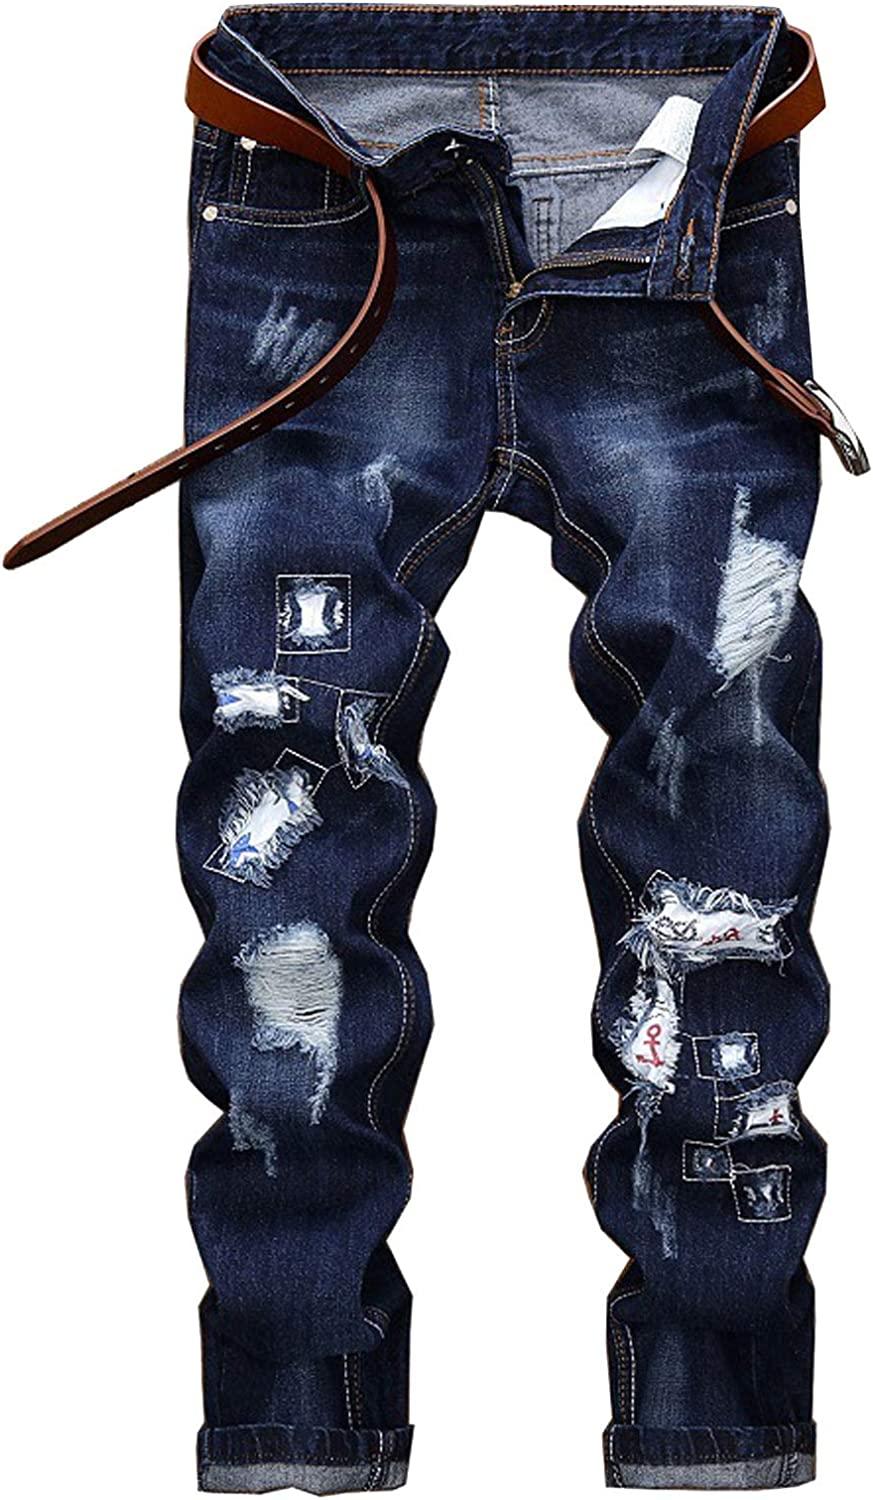 AIEOE Ripped Jeans Men Hiphop Straight Demin Jeans Skinny Stretch Washed Solid Plus Size 40 Blue